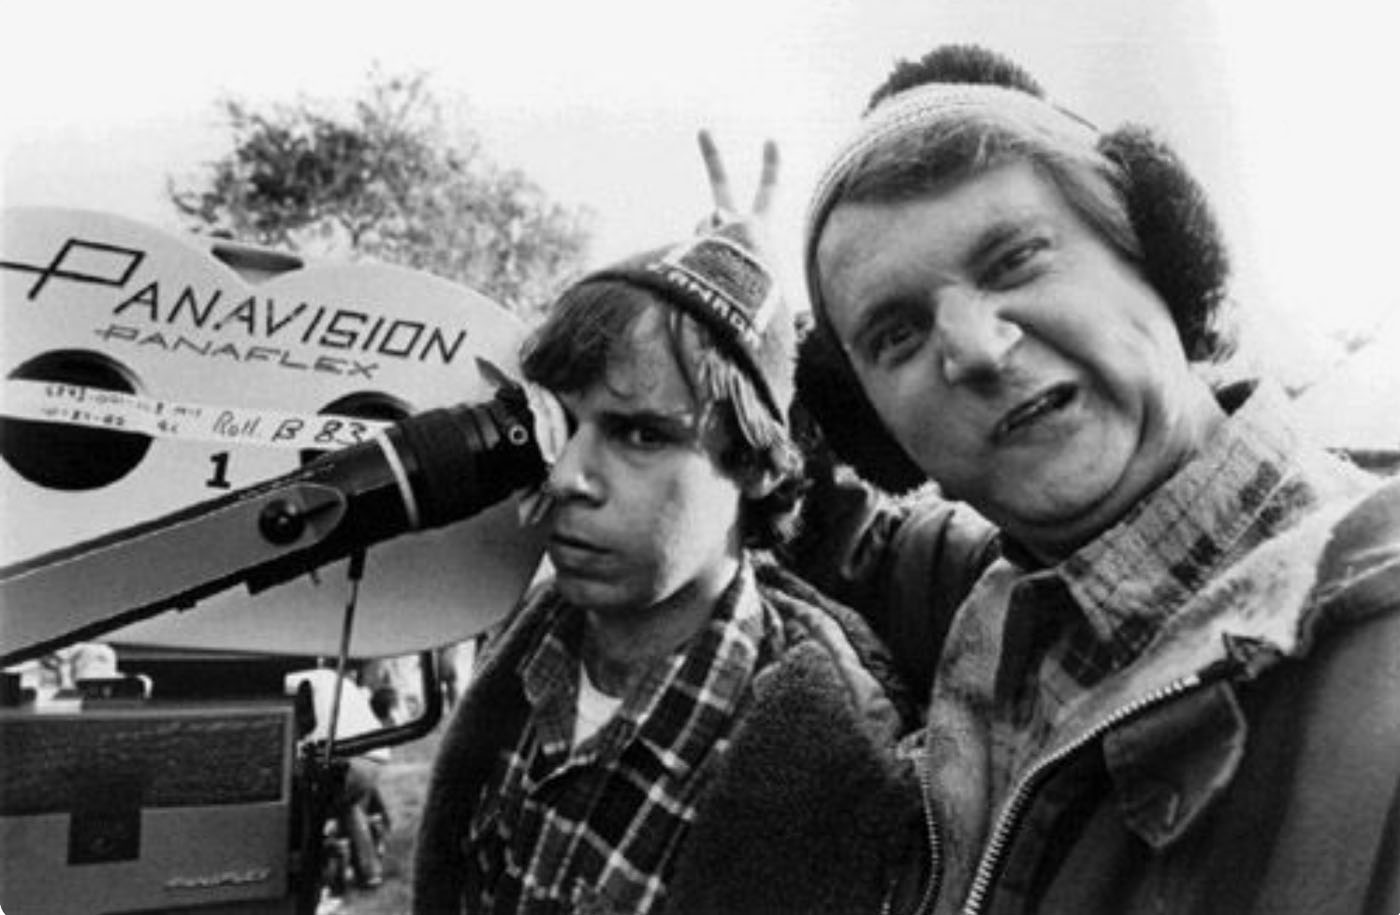 On Strange Brew set